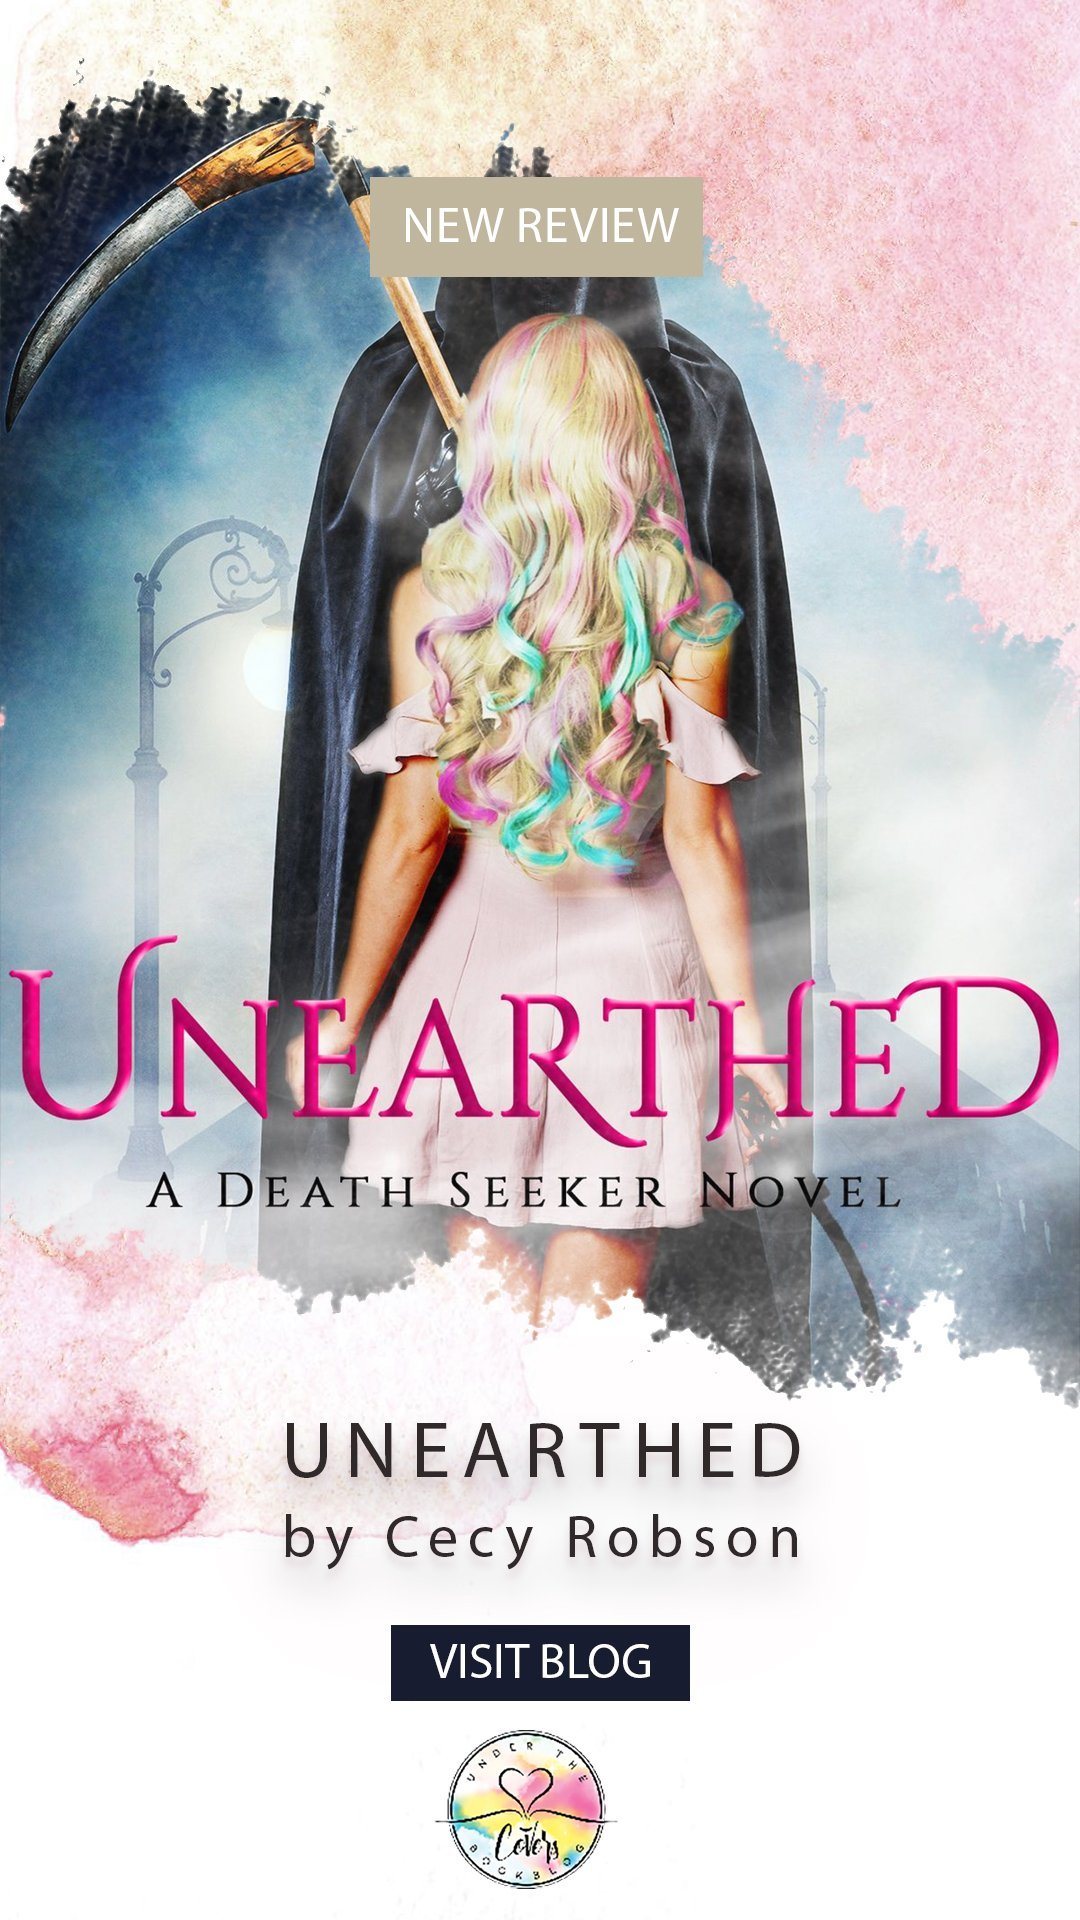 ARC Review: Unearthed by Cecy Robson